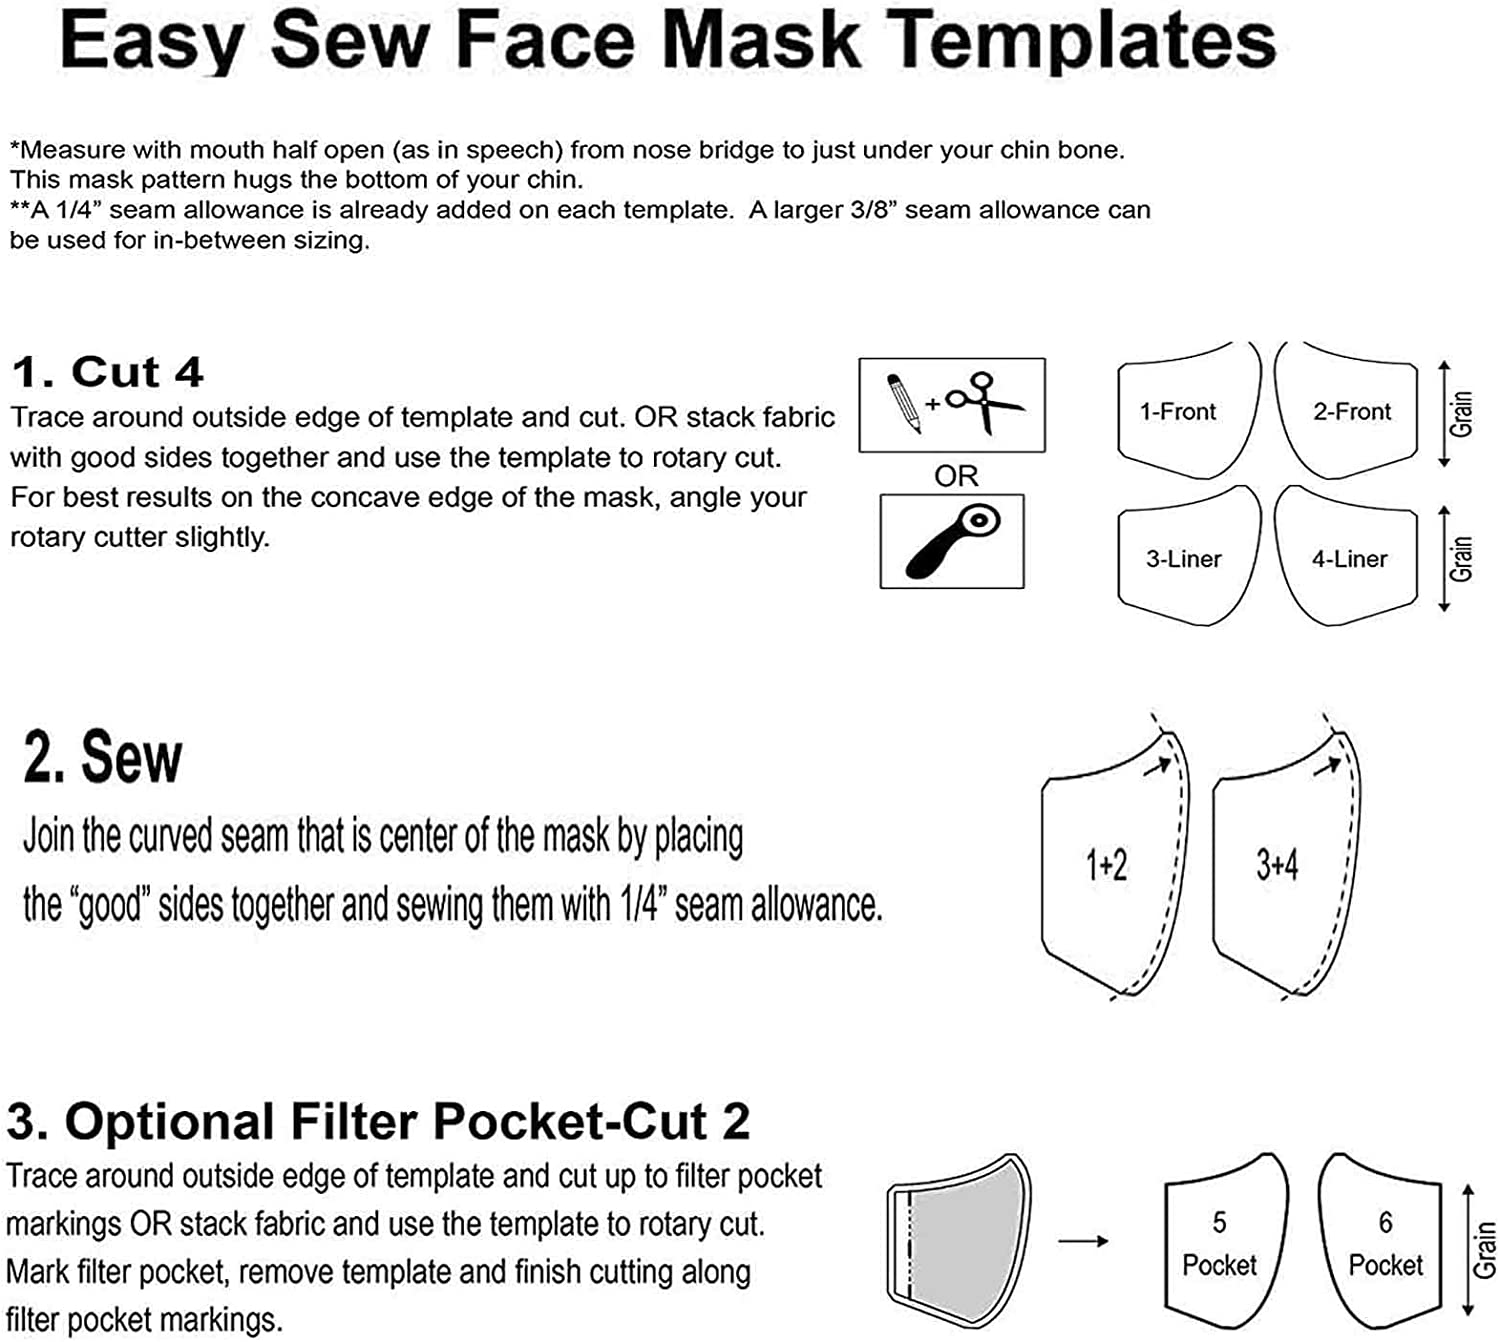 4PC Homemade Sewing Ruler Template Fitted Pattern,Reusable Plastic Sewing Template Pattern for DIY Face Bandanas,with Elastic Tool,for Kids,Men,Women